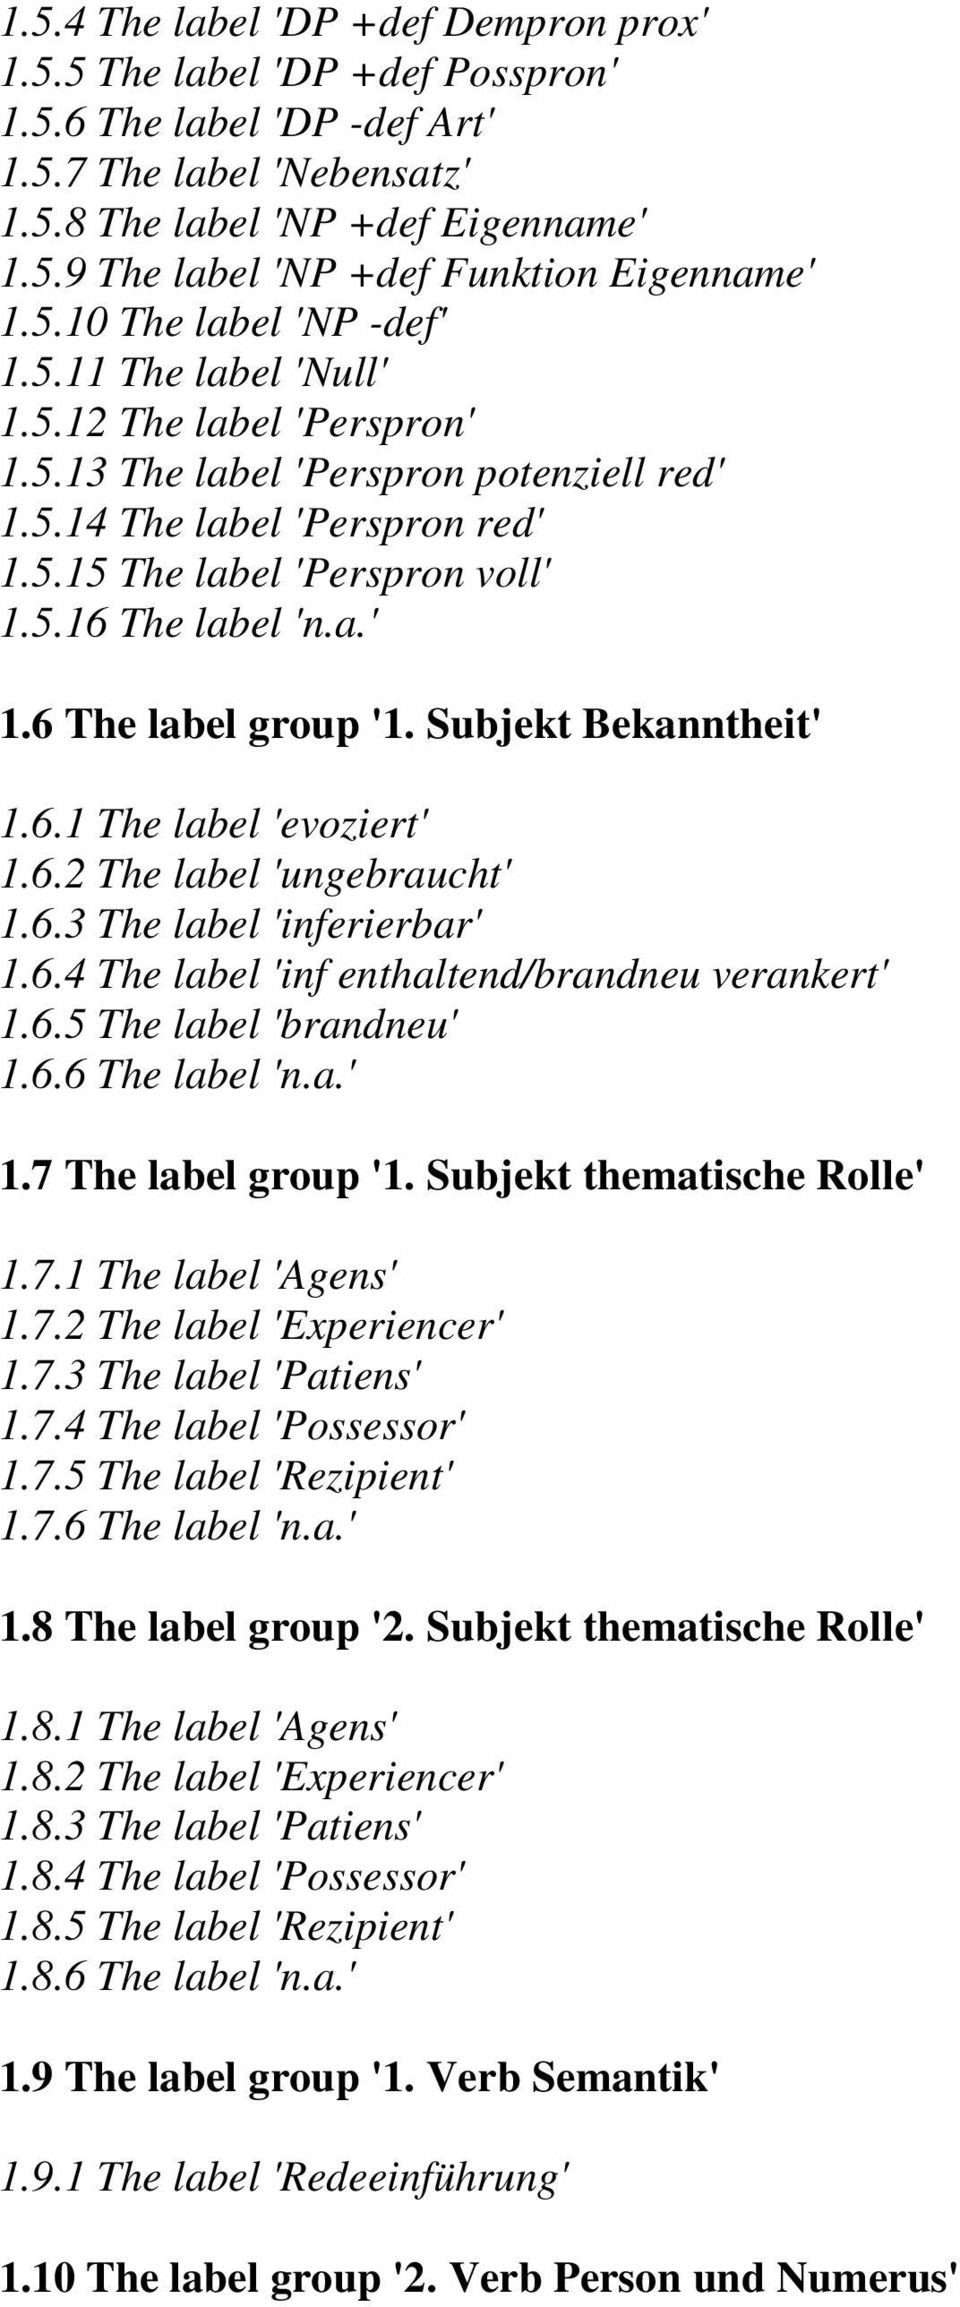 a.' 1.6 The label group '1. Subjekt Bekanntheit' 1.6.1 The label 'evoziert' 1.6.2 The label 'ungebraucht' 1.6.3 The label 'inferierbar' 1.6.4 The label 'inf enthaltend/brandneu verankert' 1.6.5 The label 'brandneu' 1.